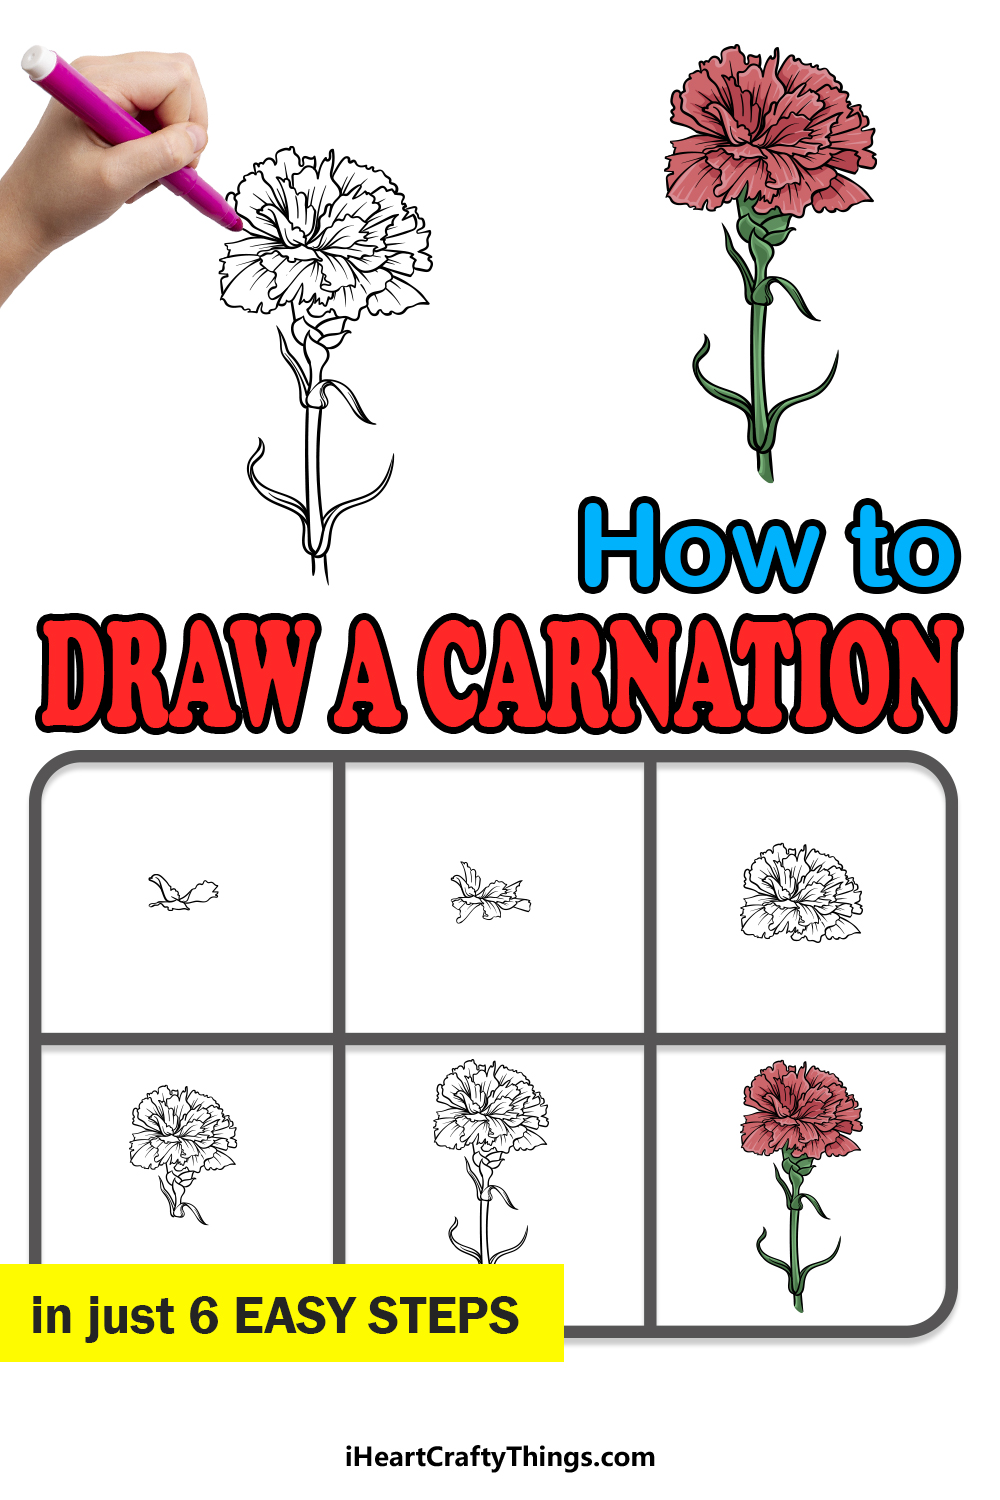 how to draw a carnation in 6 easy steps